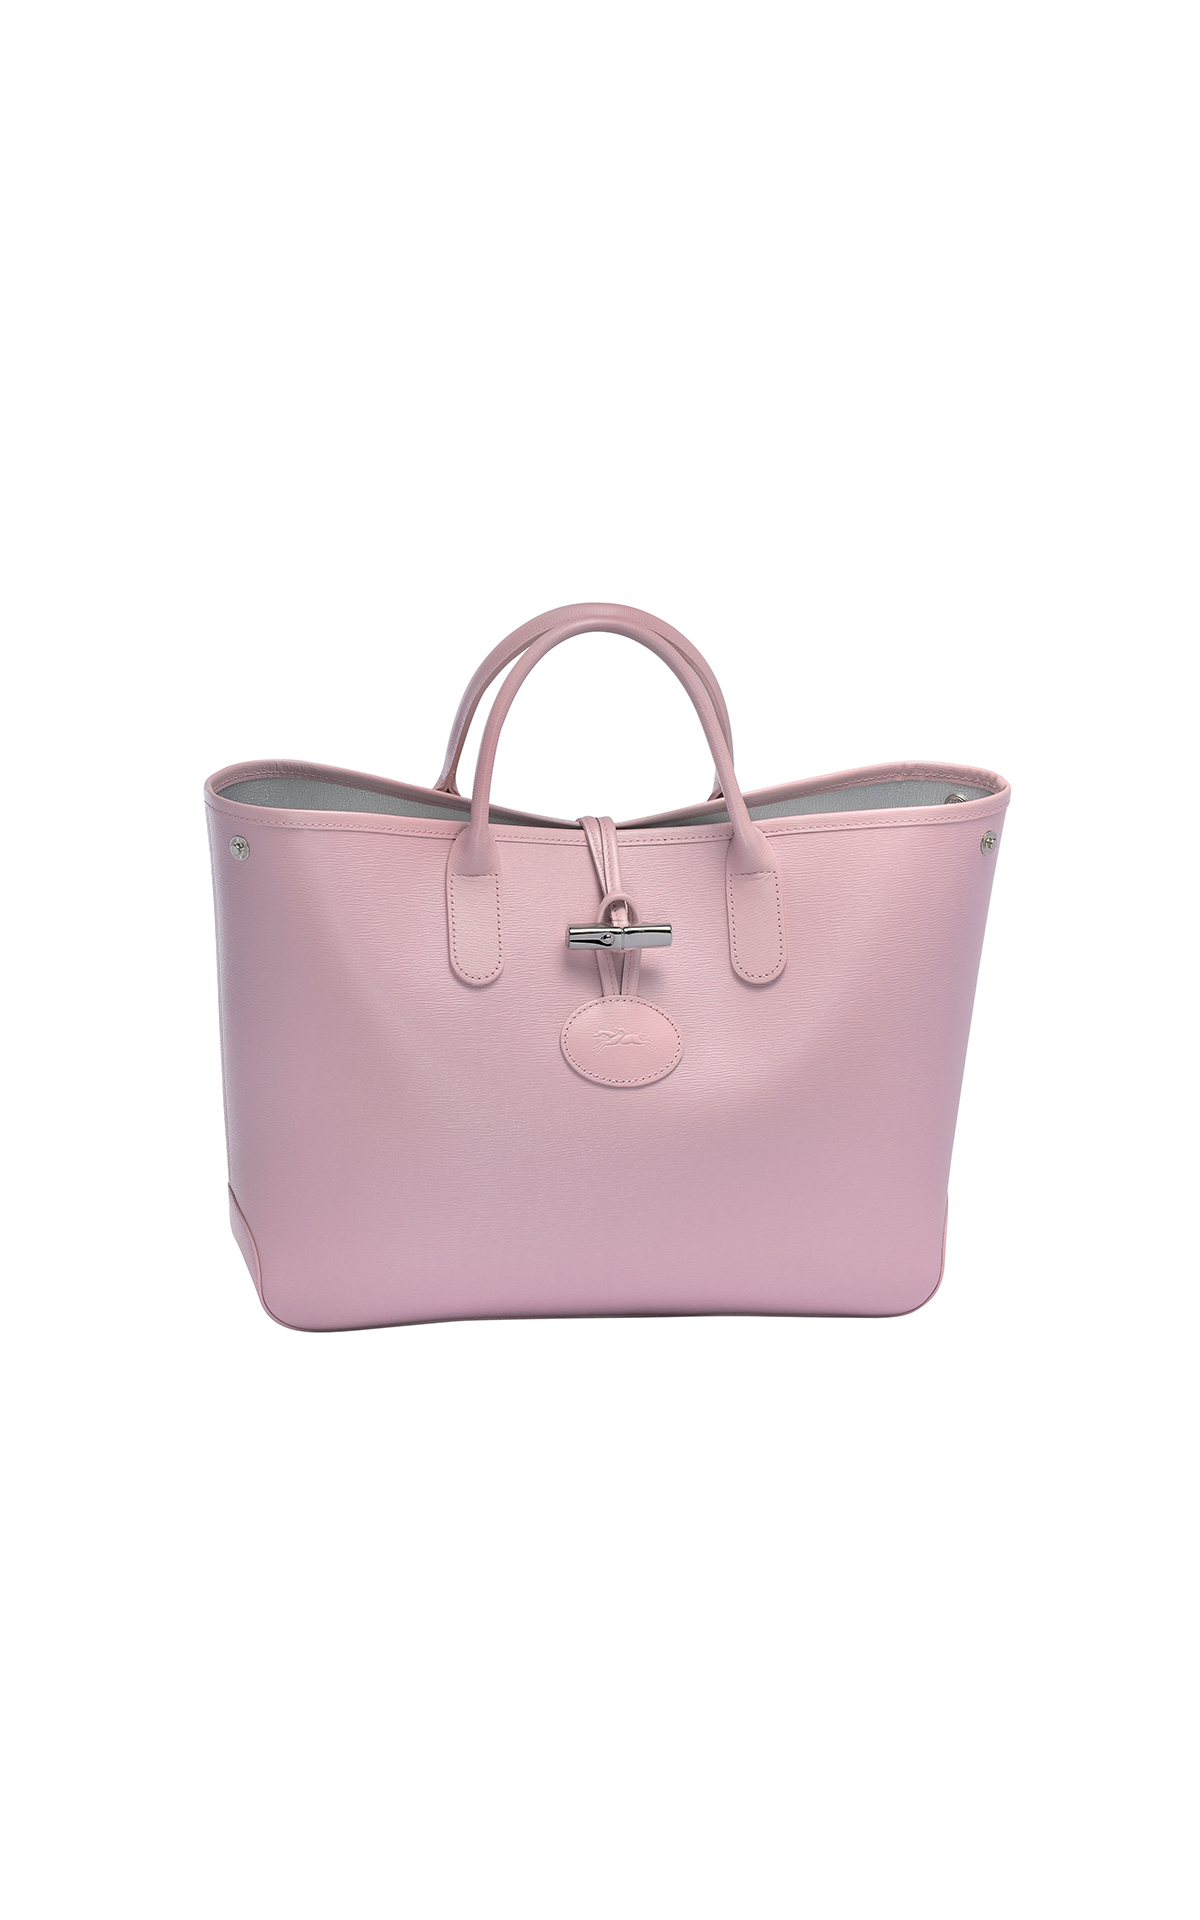 Longchamp Roseau short handle tote at Bicester Village